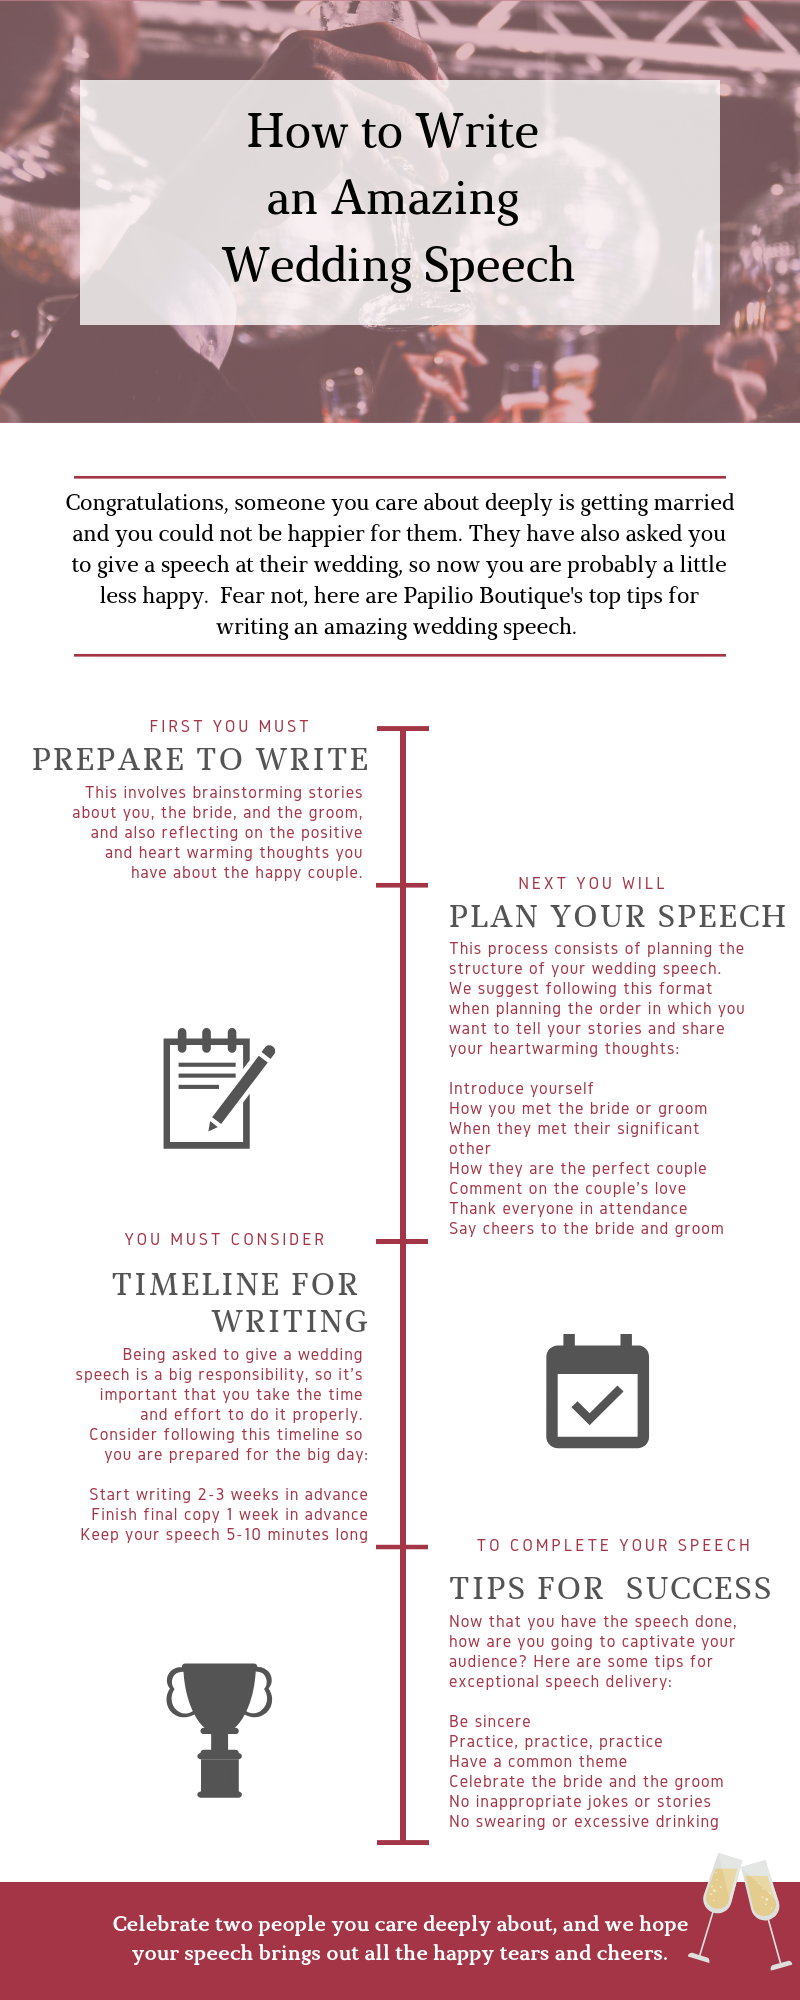 How to Write an Amazing Wedding Speech